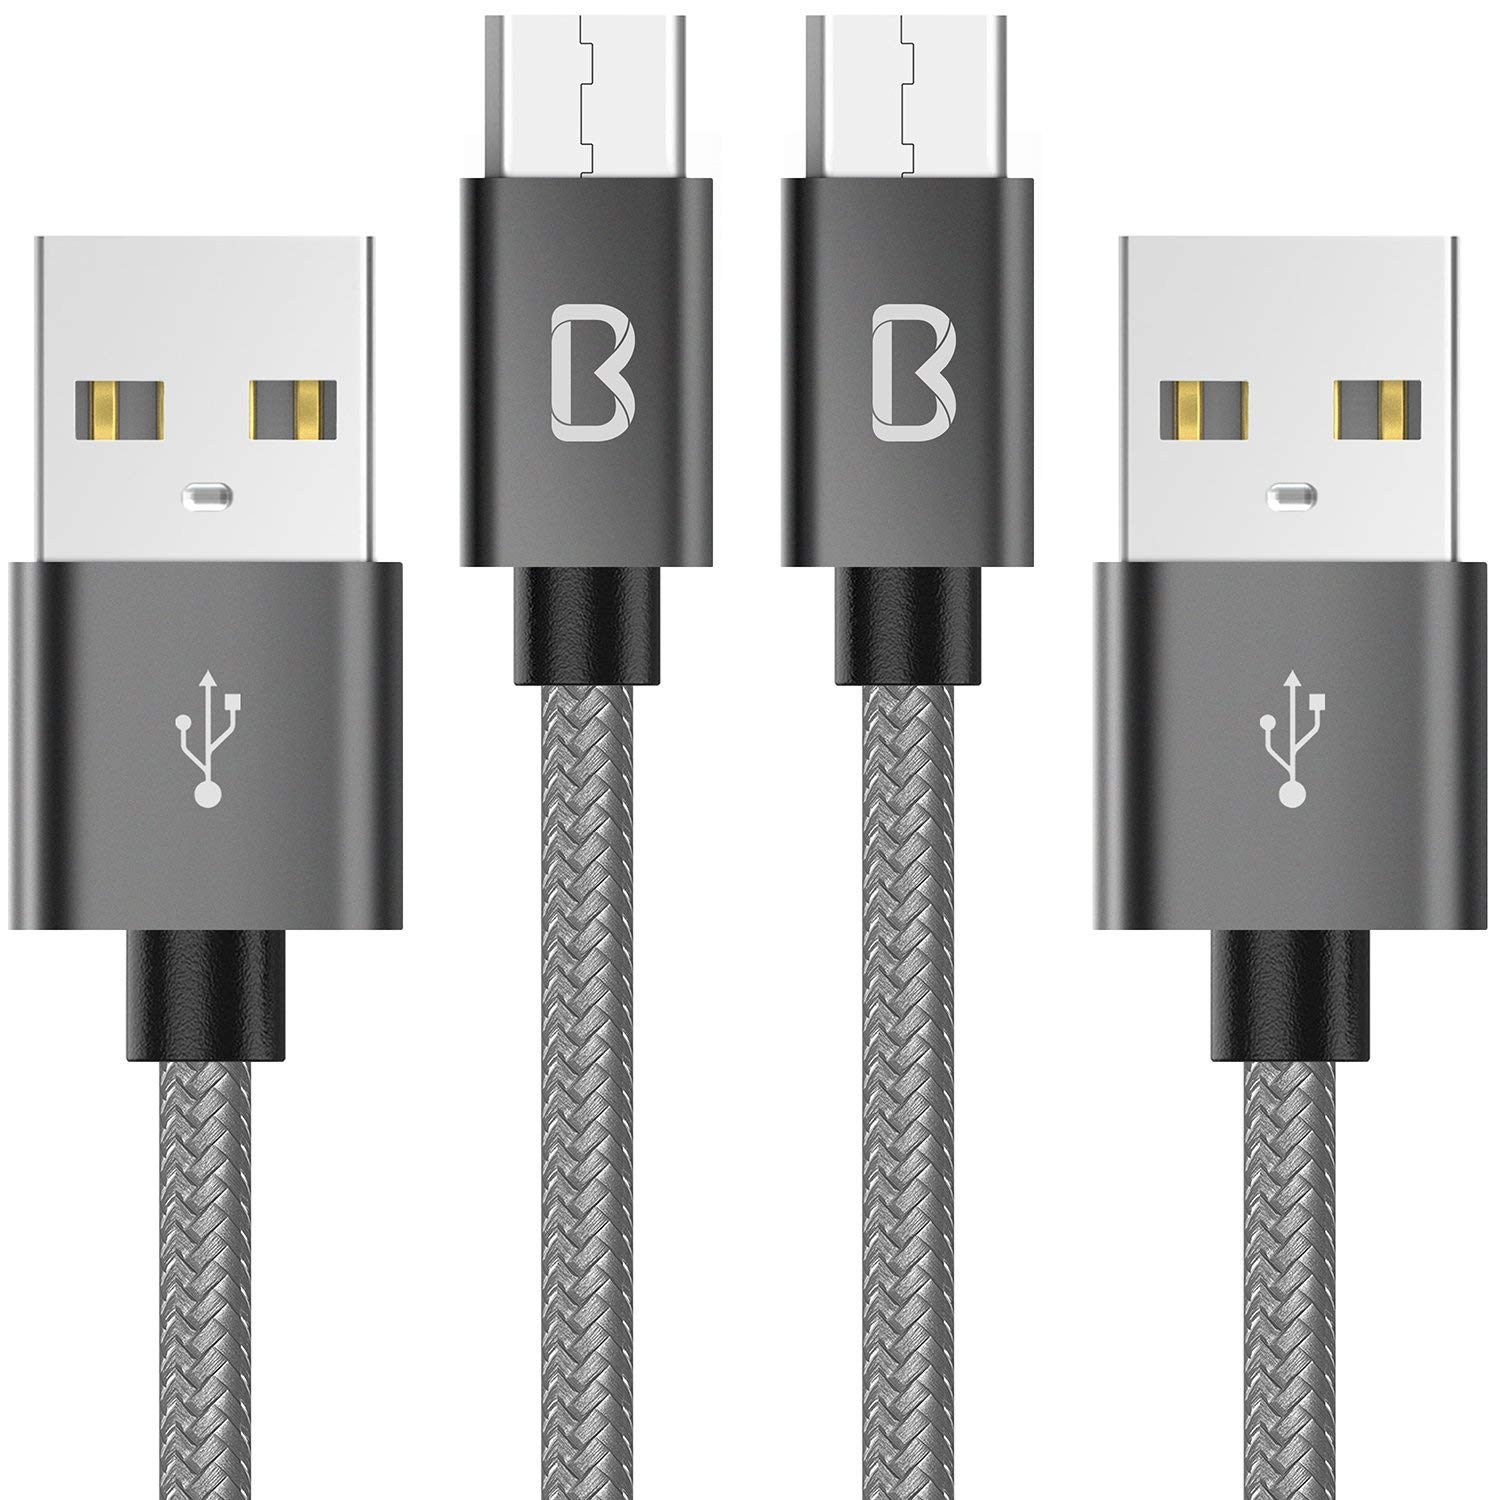 Cable Micro USB, Beikell 2M [2-Pack] 2.4A Cable Micro USB Trenzado de nylon-Cable USB Sincro y para Galaxy S7 / S7 Edge,Note 5 / 4 / 3,HTC,LG,Sony, Nexus, Blackberry, Nokia, Android: Amazon.es: